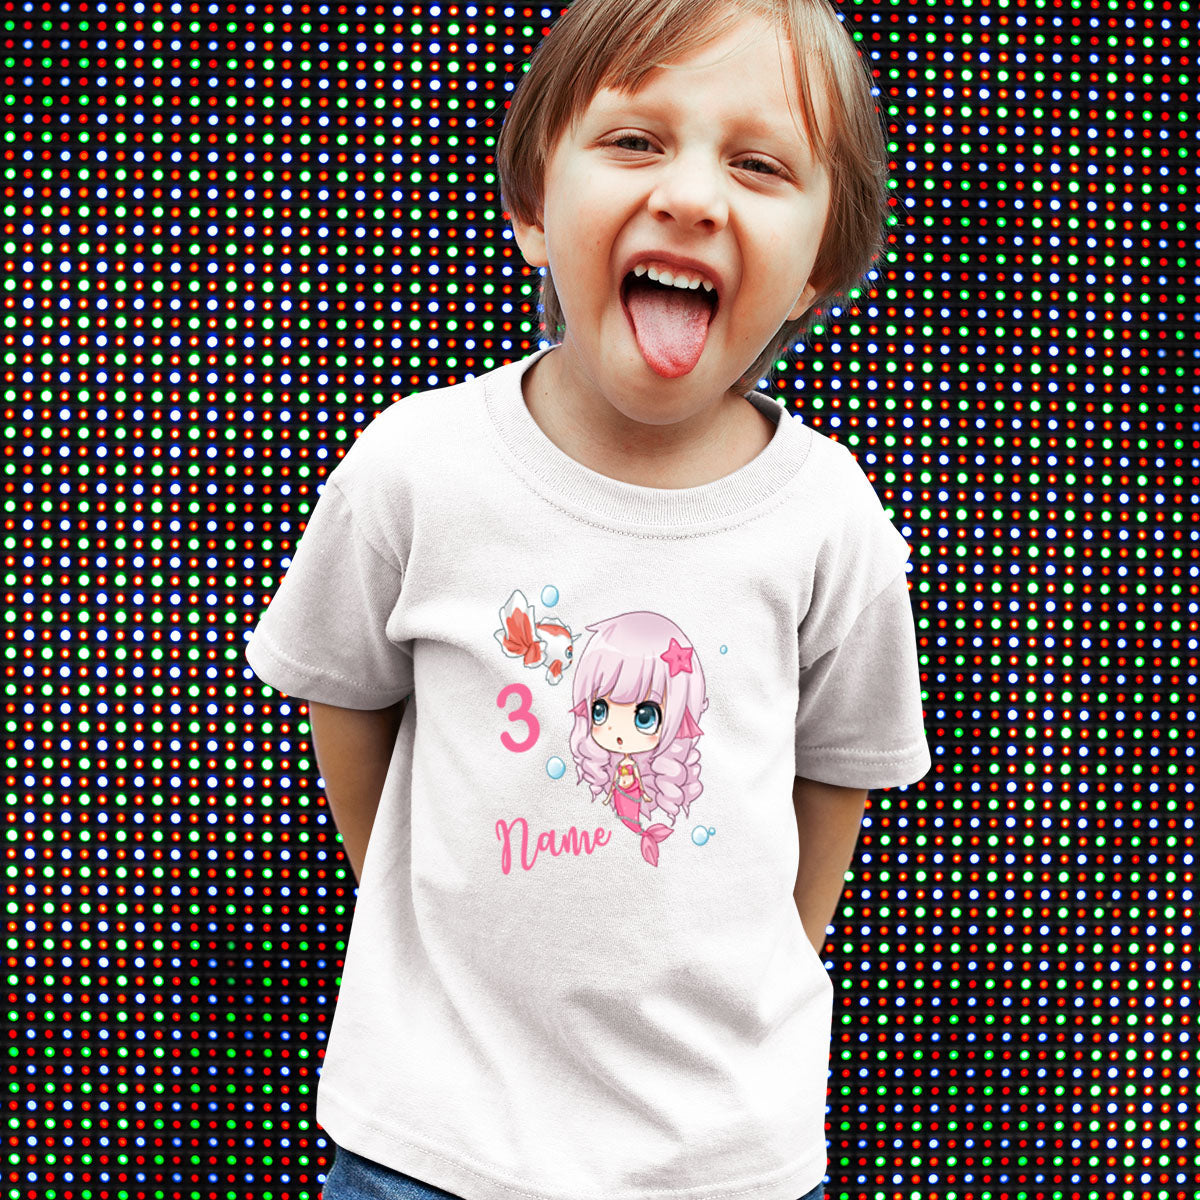 Sprinklecart Make This Birthday Special | Lovely Little Mermaid 3rd Birthday T Shirt for Your Little One | Perfect Birthday Tee Wear